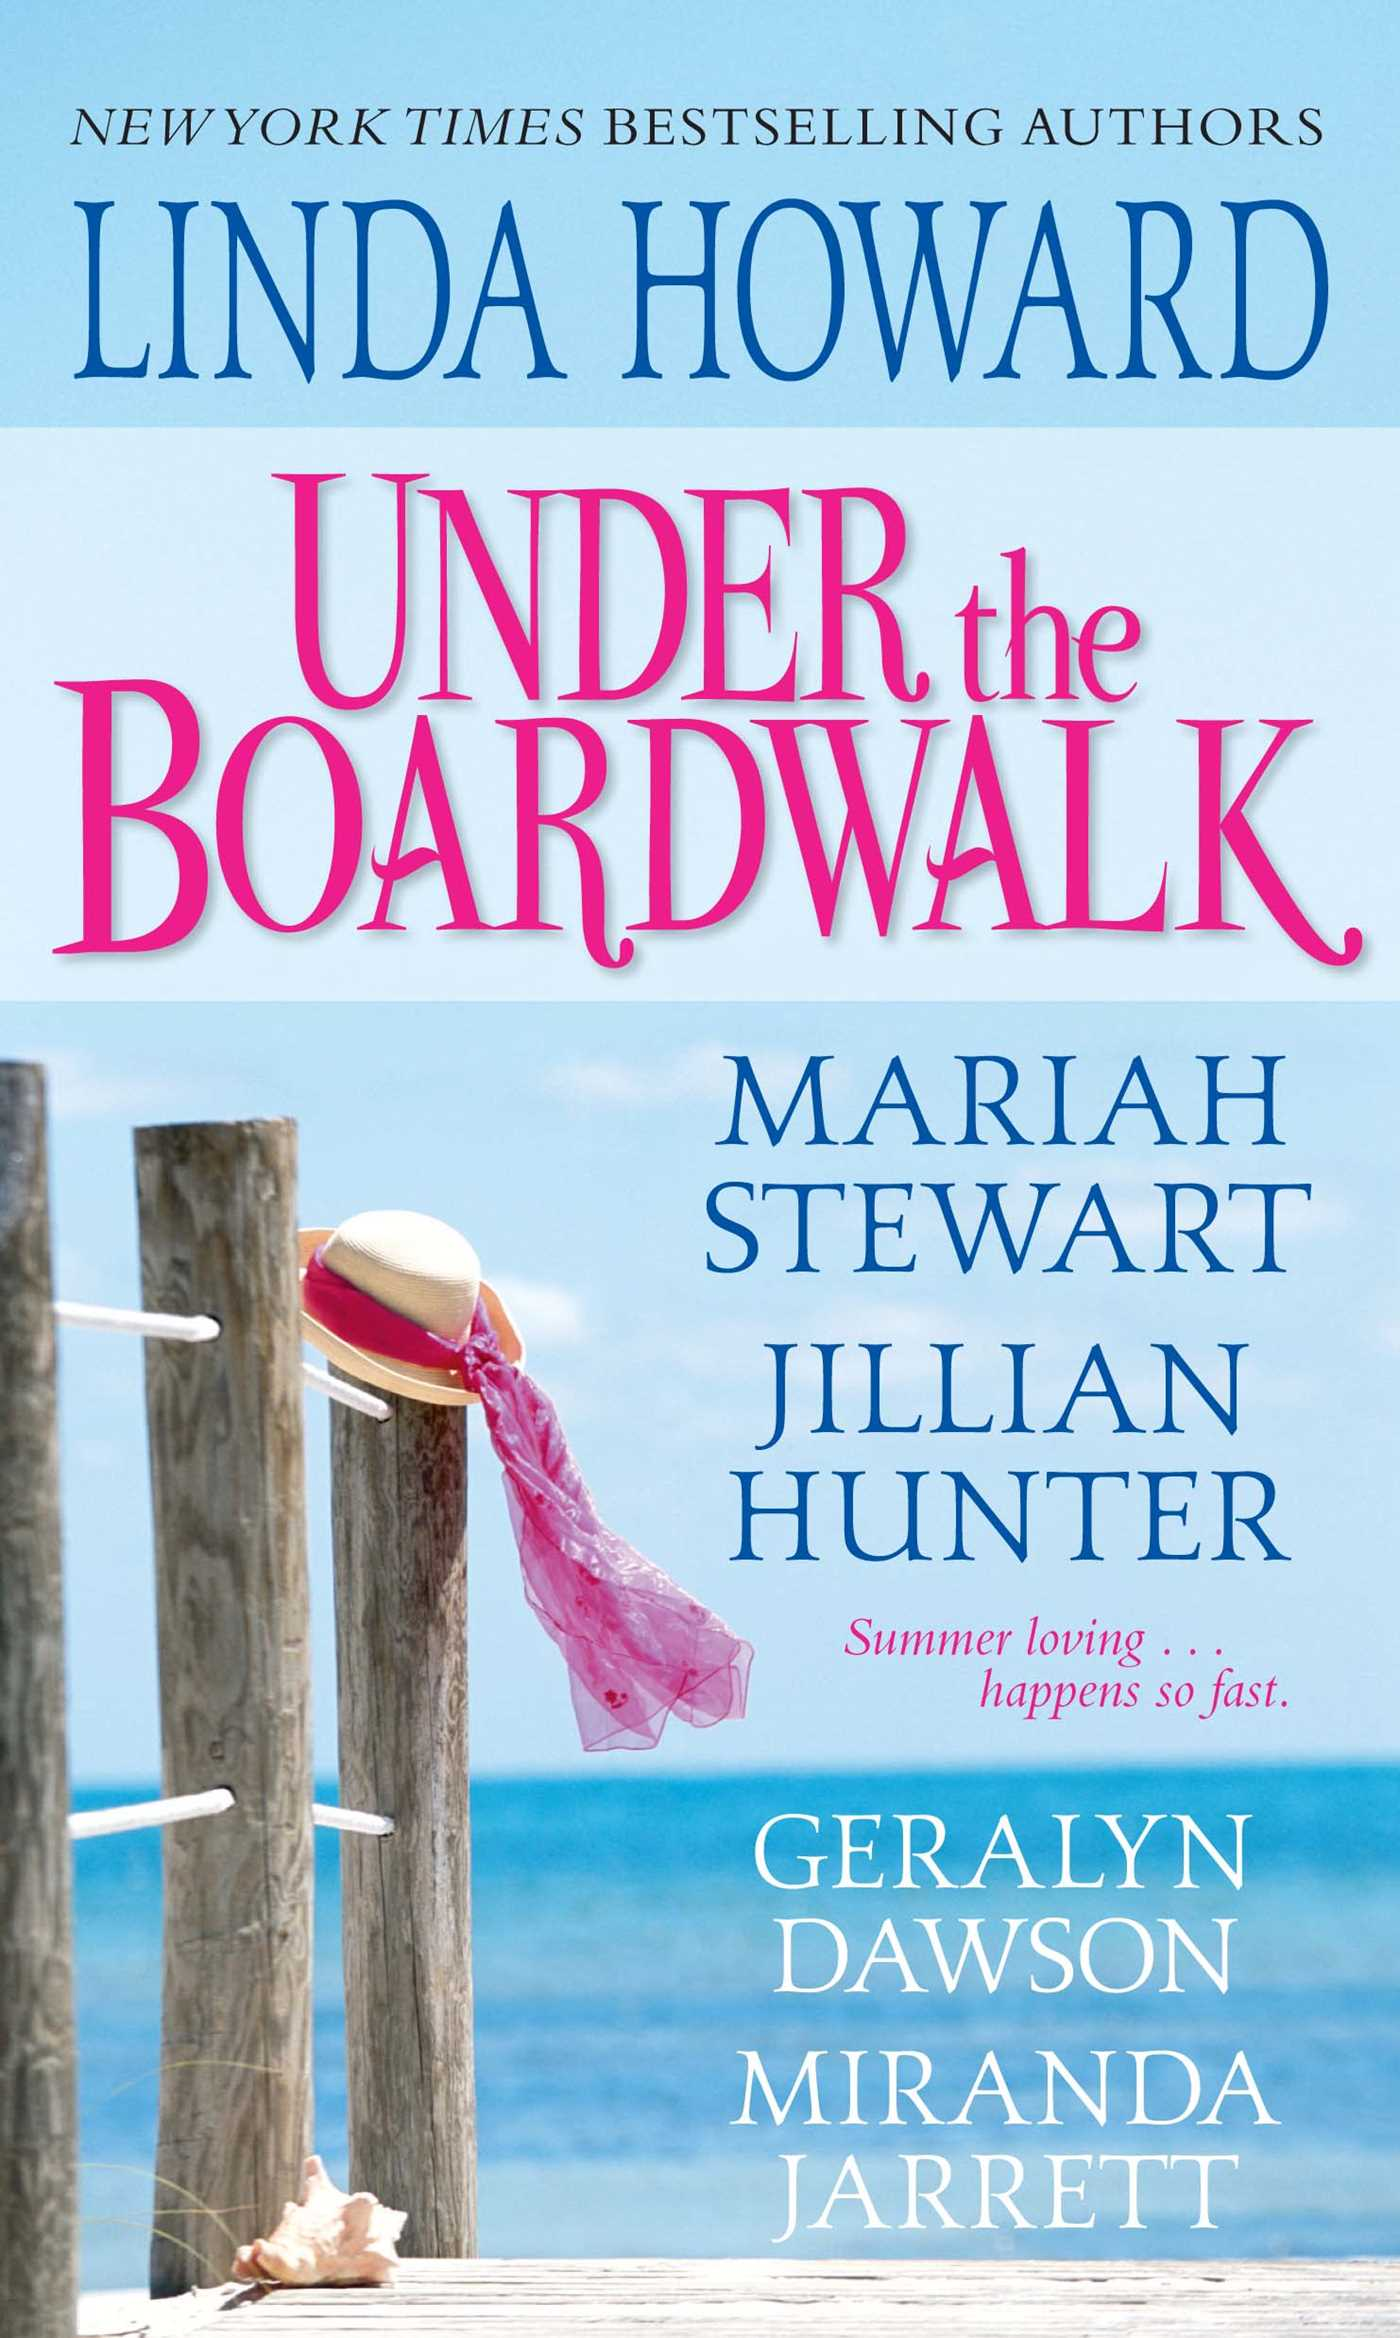 Under the boardwalk 9781501107337 hr